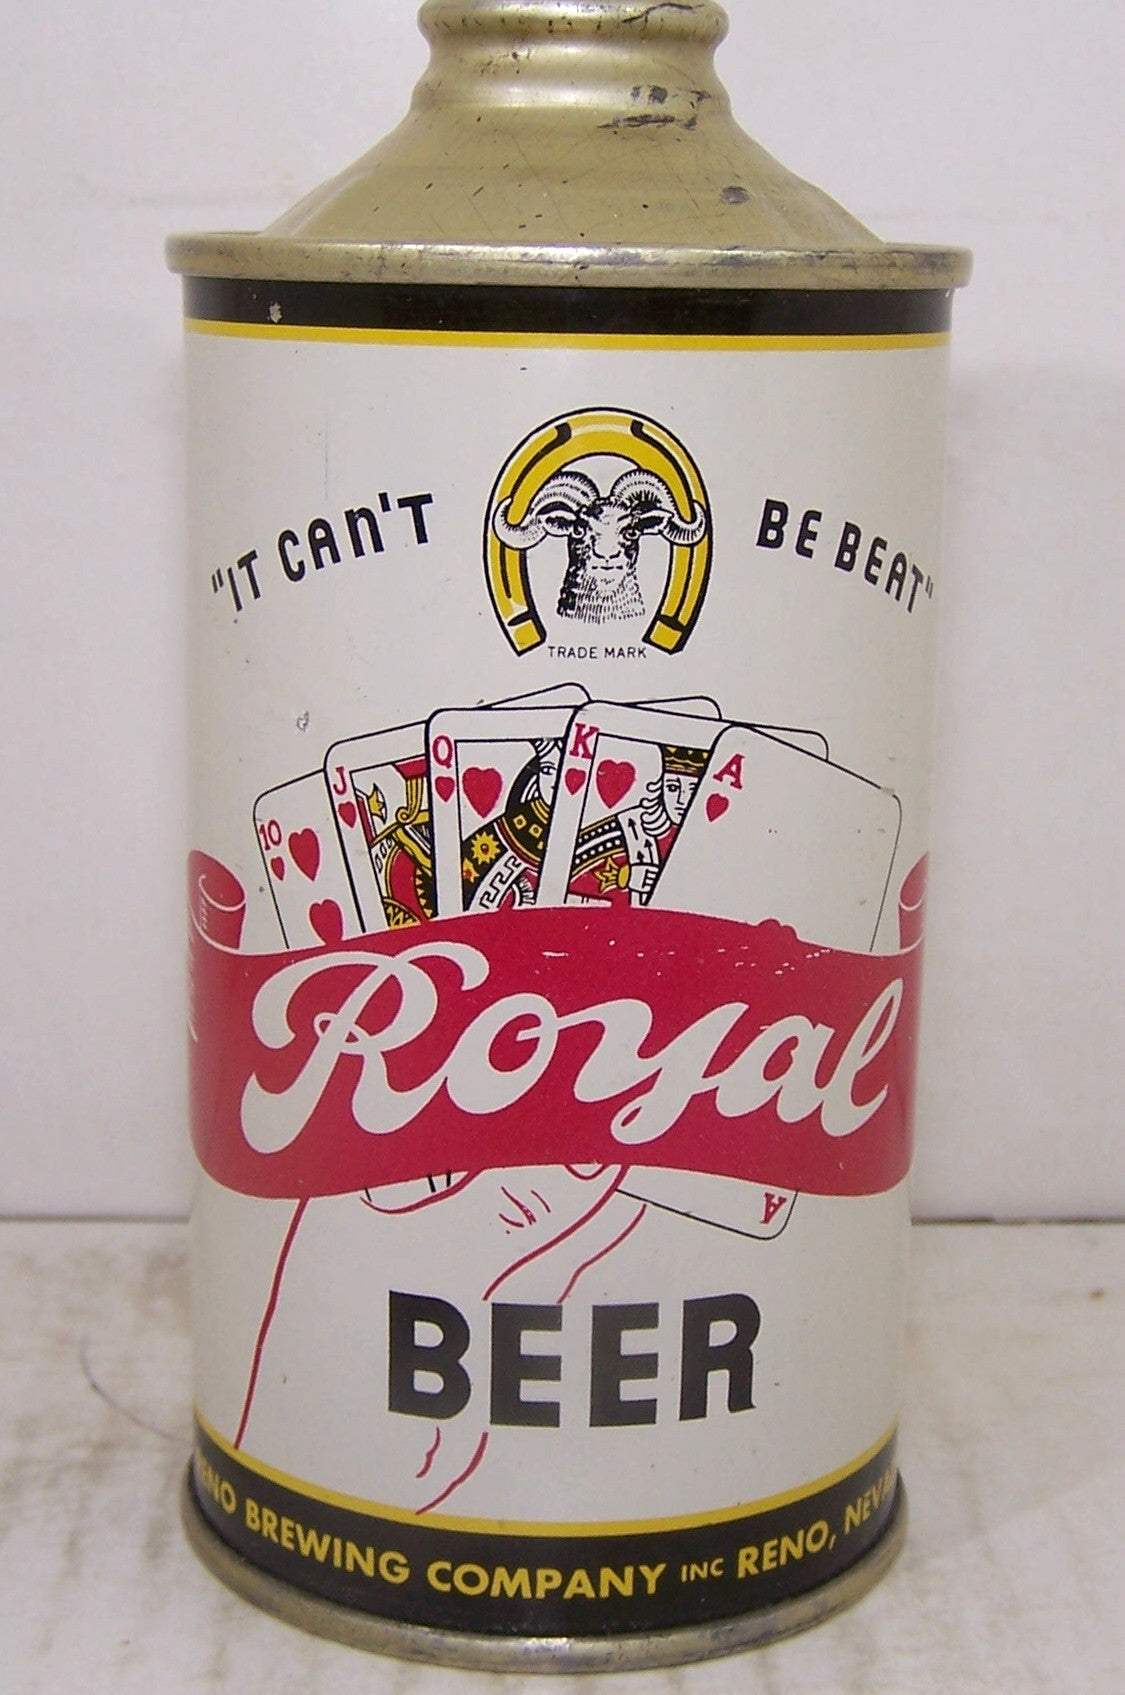 "Royal Beer "" It can't be beat"" USBC 182-12, Grade 1/1+ Sold 4/24/15"